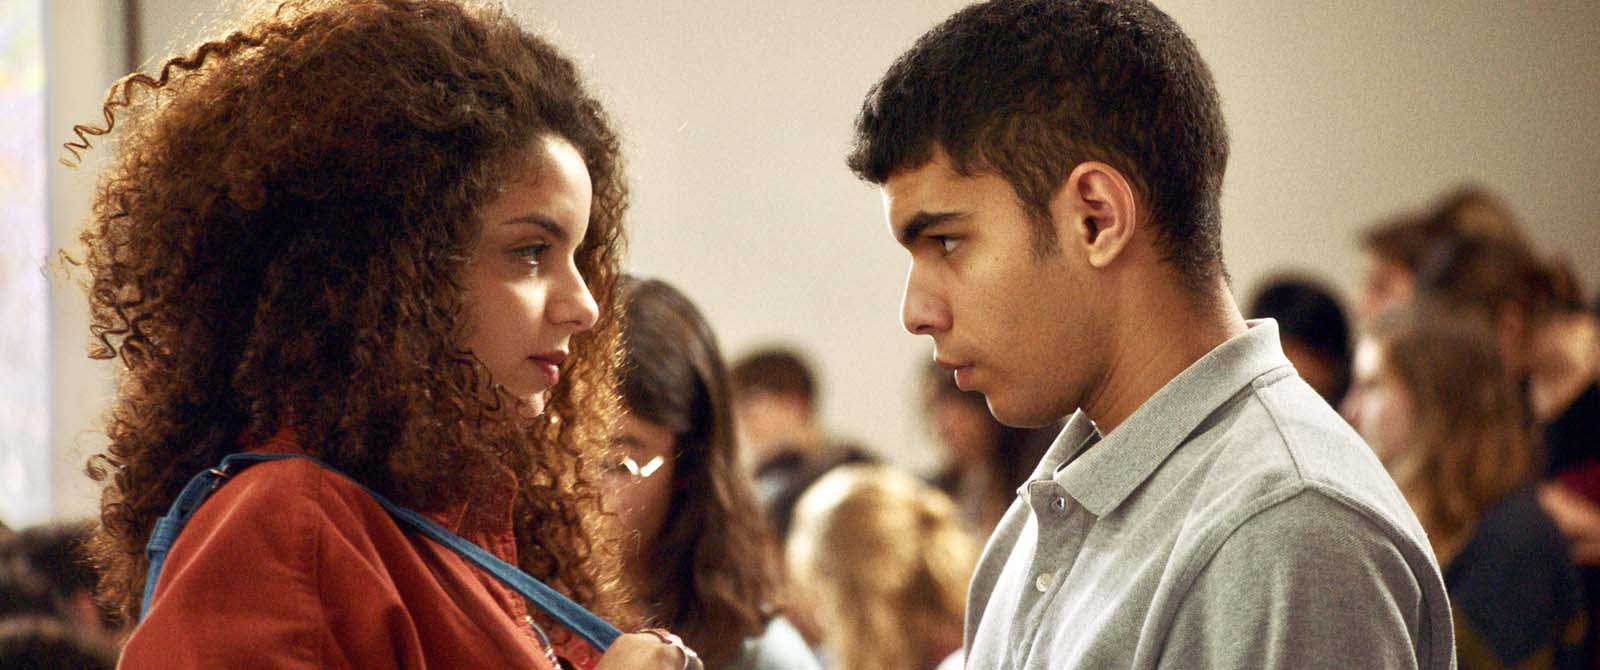 Farah (Zbedia Balhajamor) and Ahmed (Sami Outalbali) experience an immediate attraction when they meet in a lecture